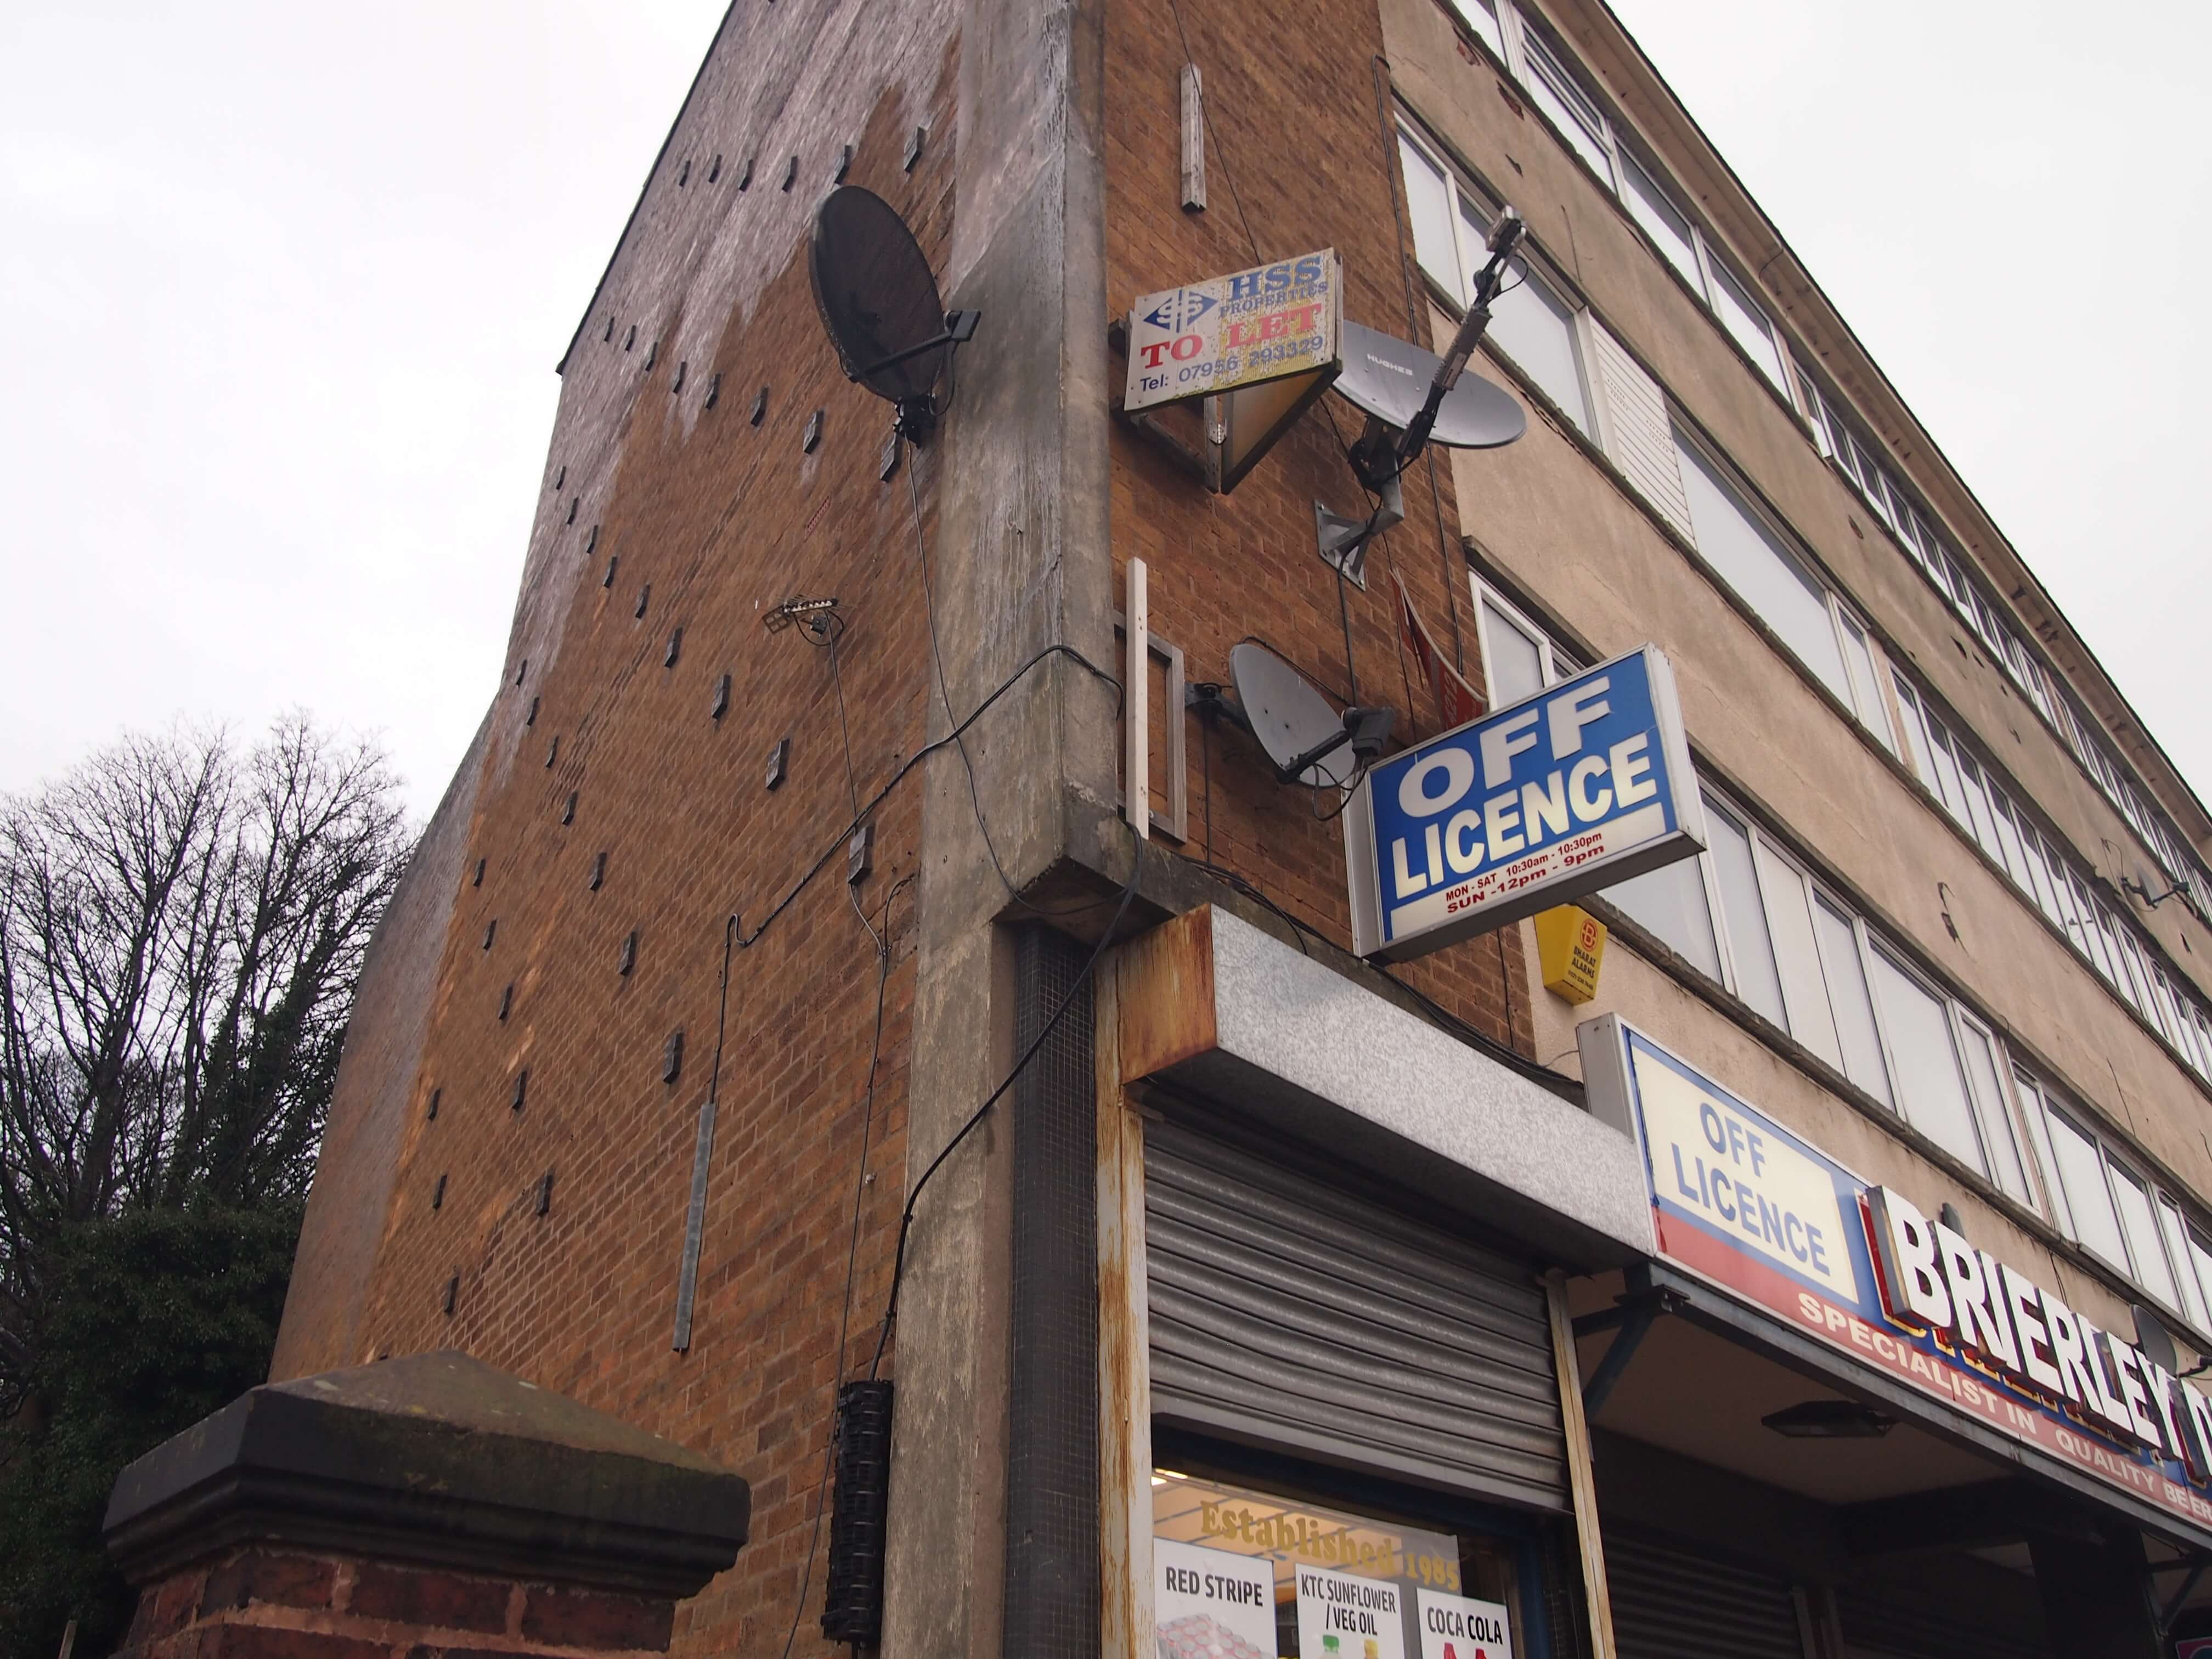 Single joint expert witness for damp and disrepair